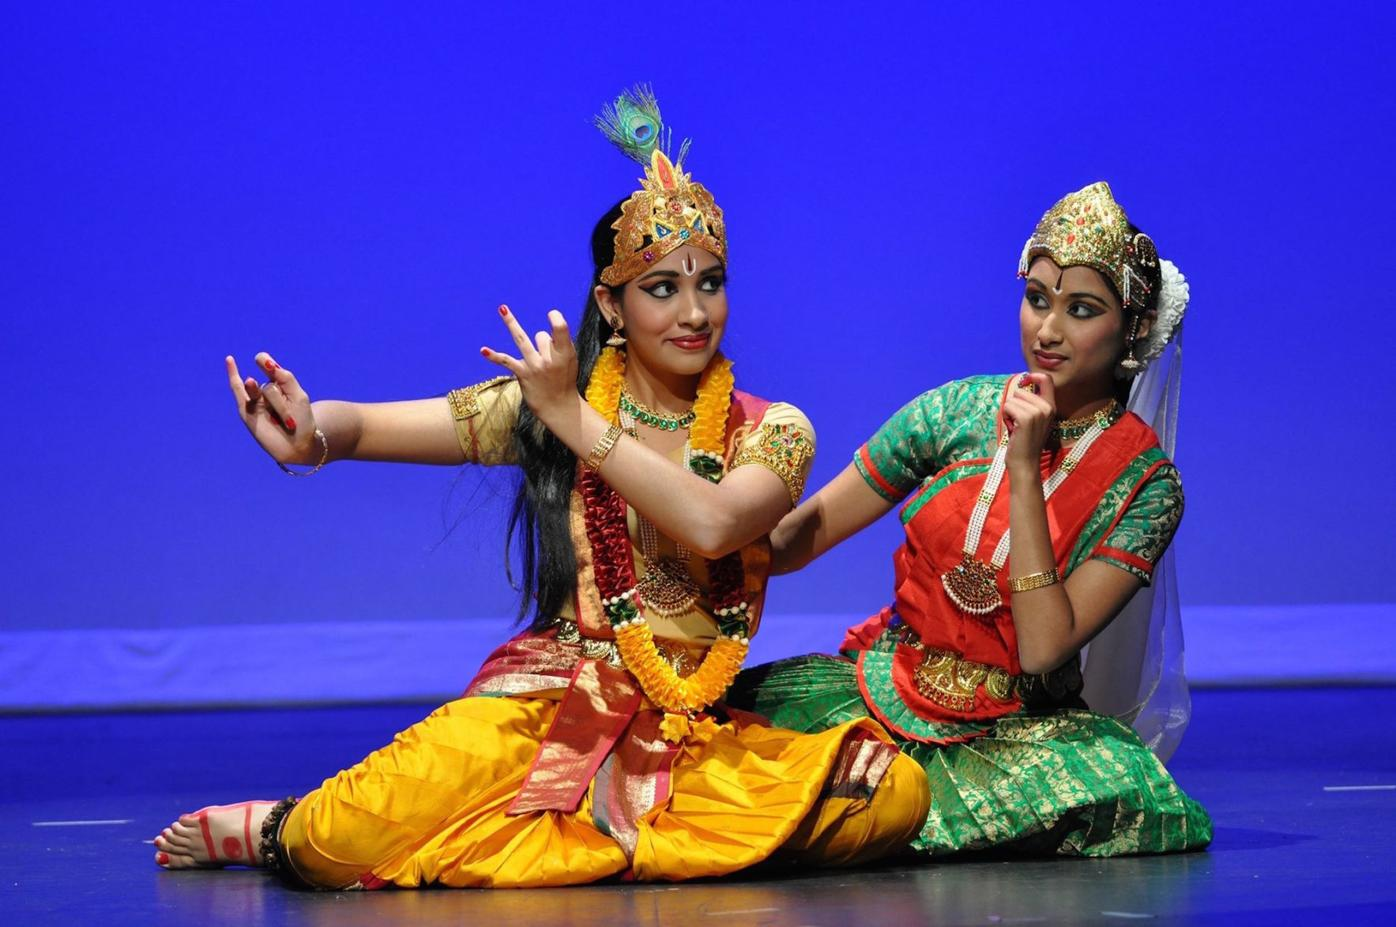 Taste the Arts benefits Young Audiences